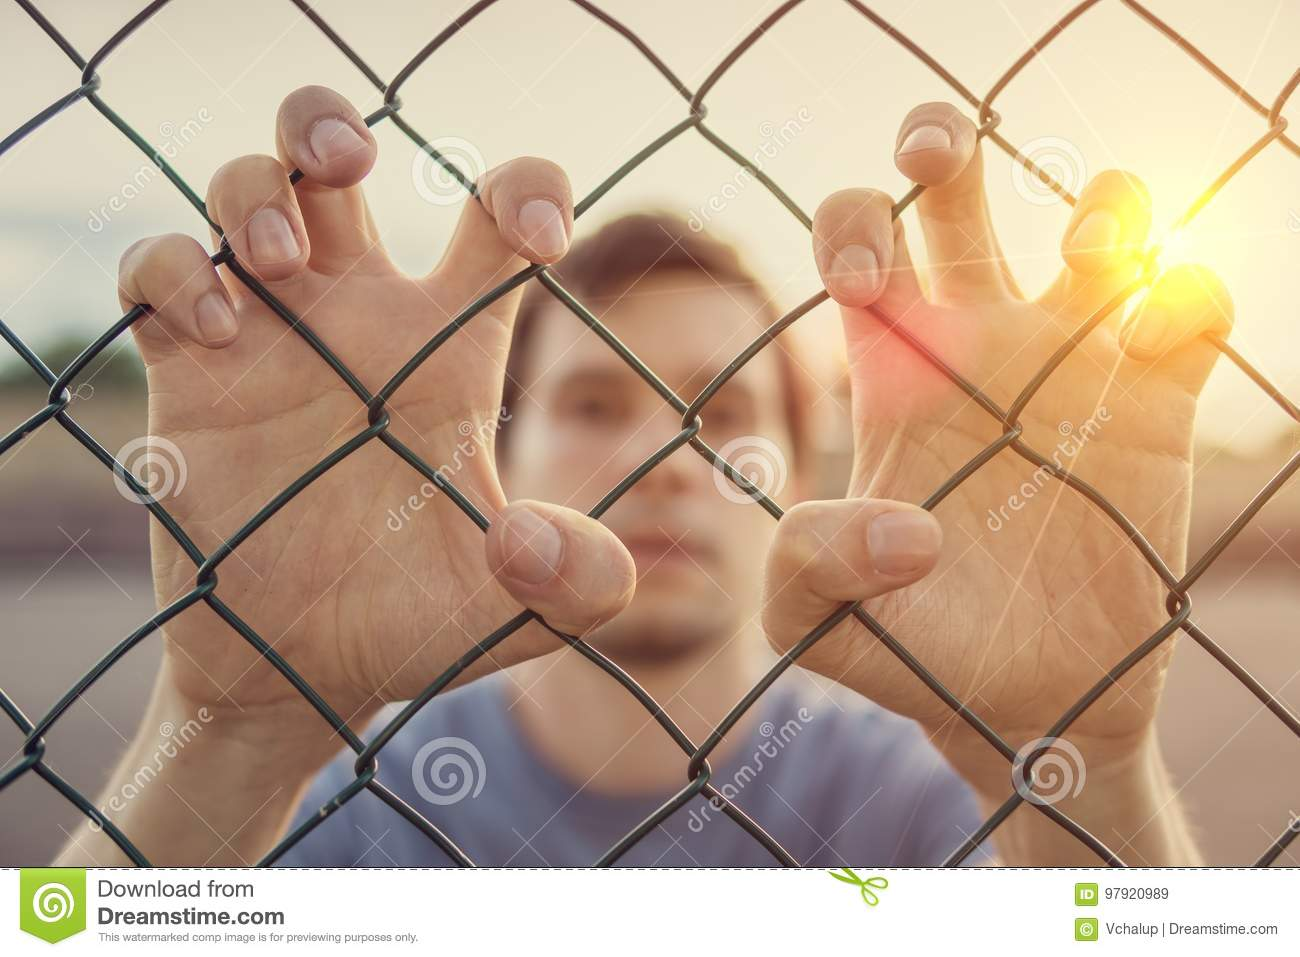 Young man behind wired fence. Immigration concept